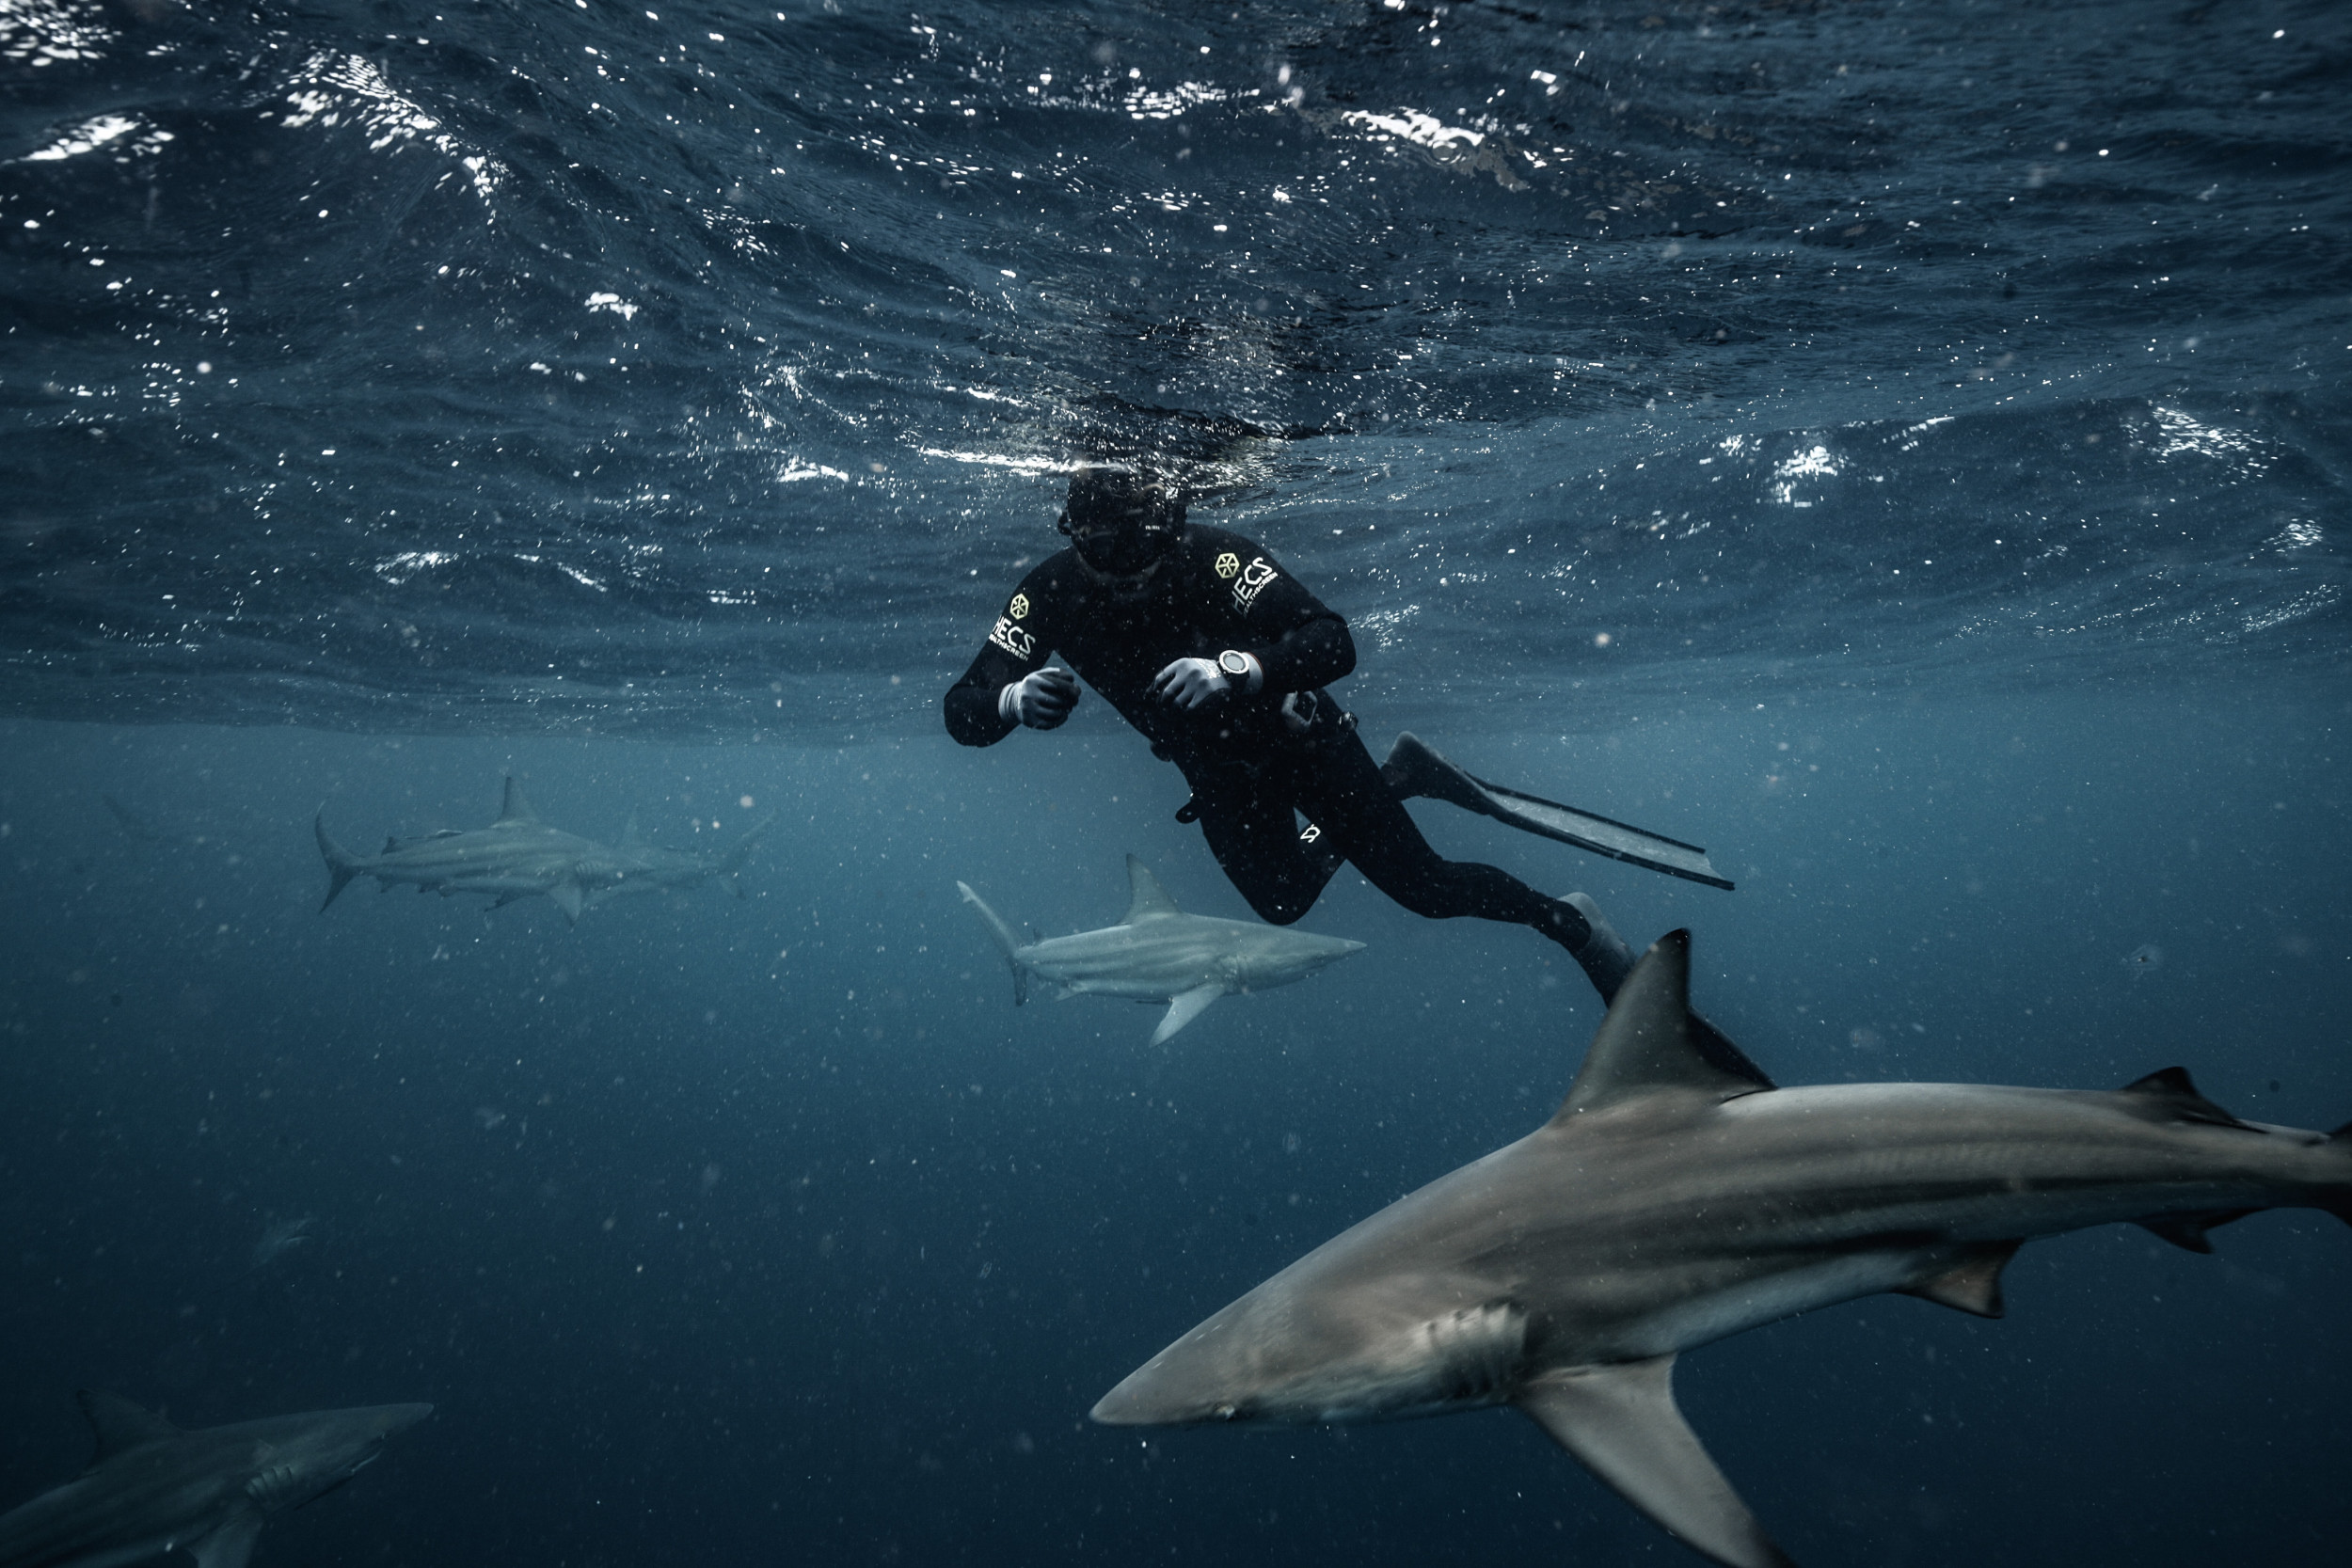 Shark not seen for over 100 years rediscovered in 'Land of the Lost'